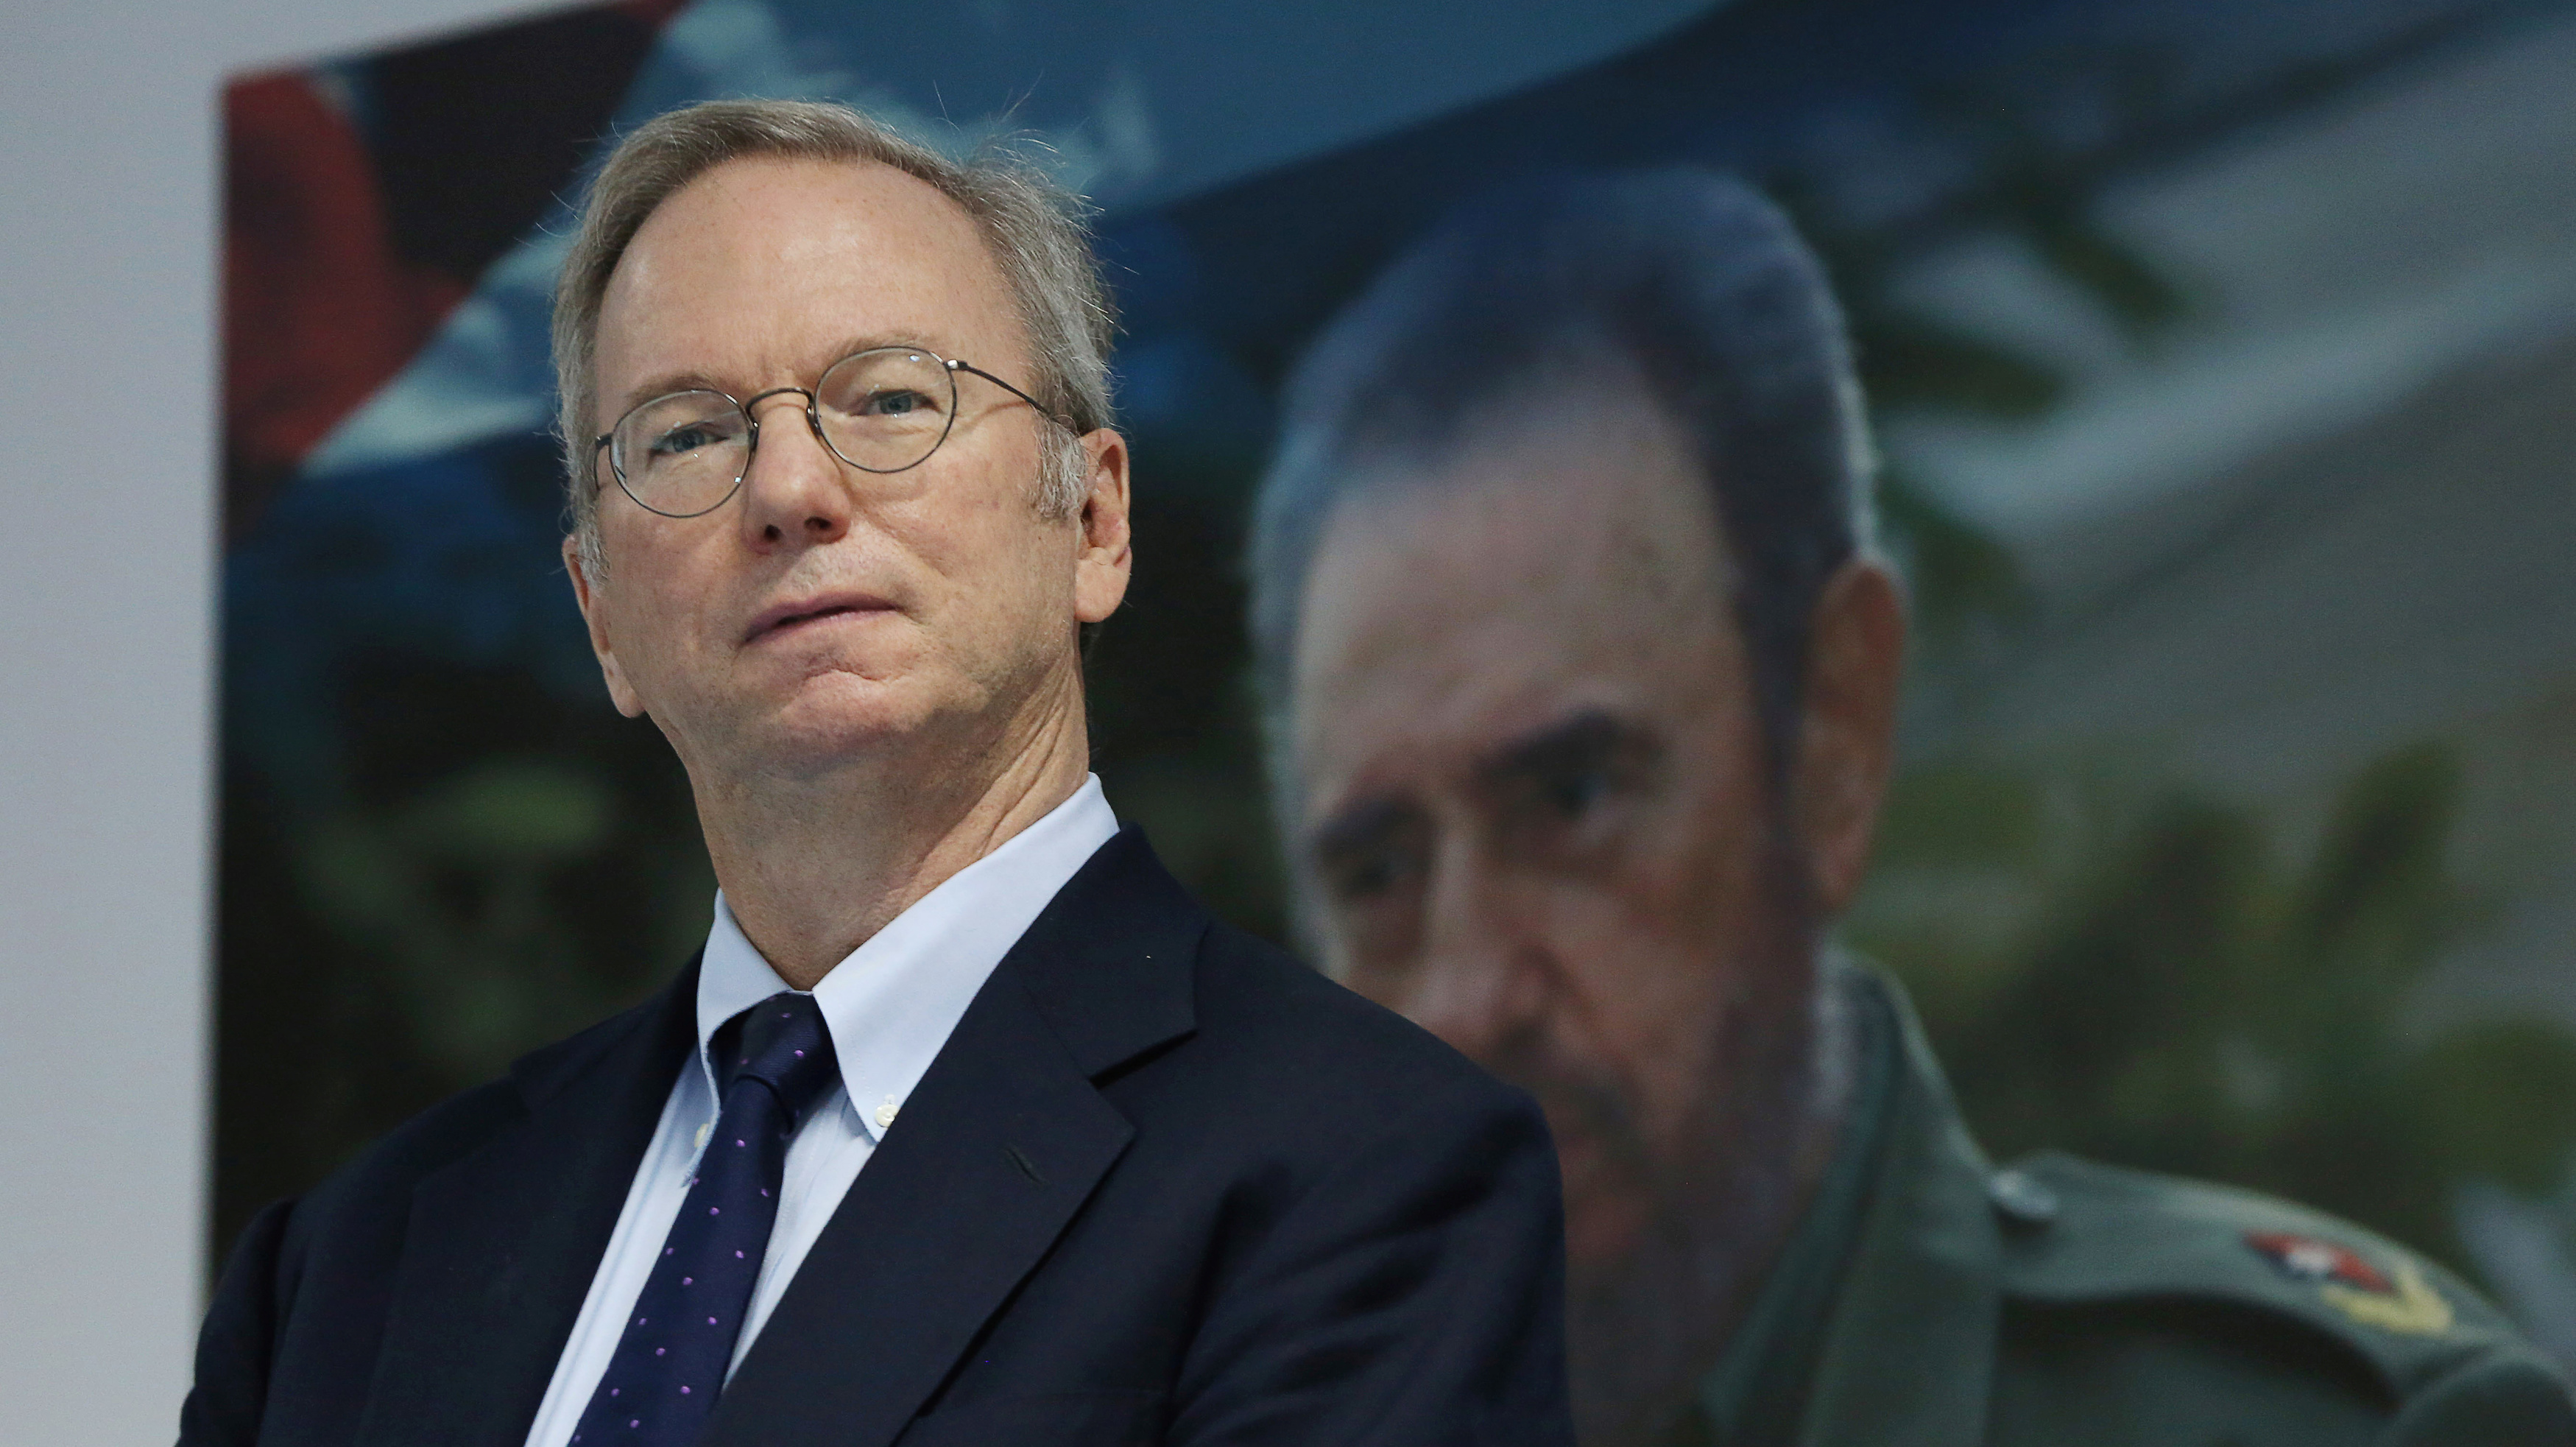 Eric Schmidt, chairman of Alphabet Inc. stands in front of a picture of former Cuba's President Fidel Castro before signing documents in Havana, Cuba, December 12, 2016. REUTERS/Alexandre Meneghini - RTX2UPLR